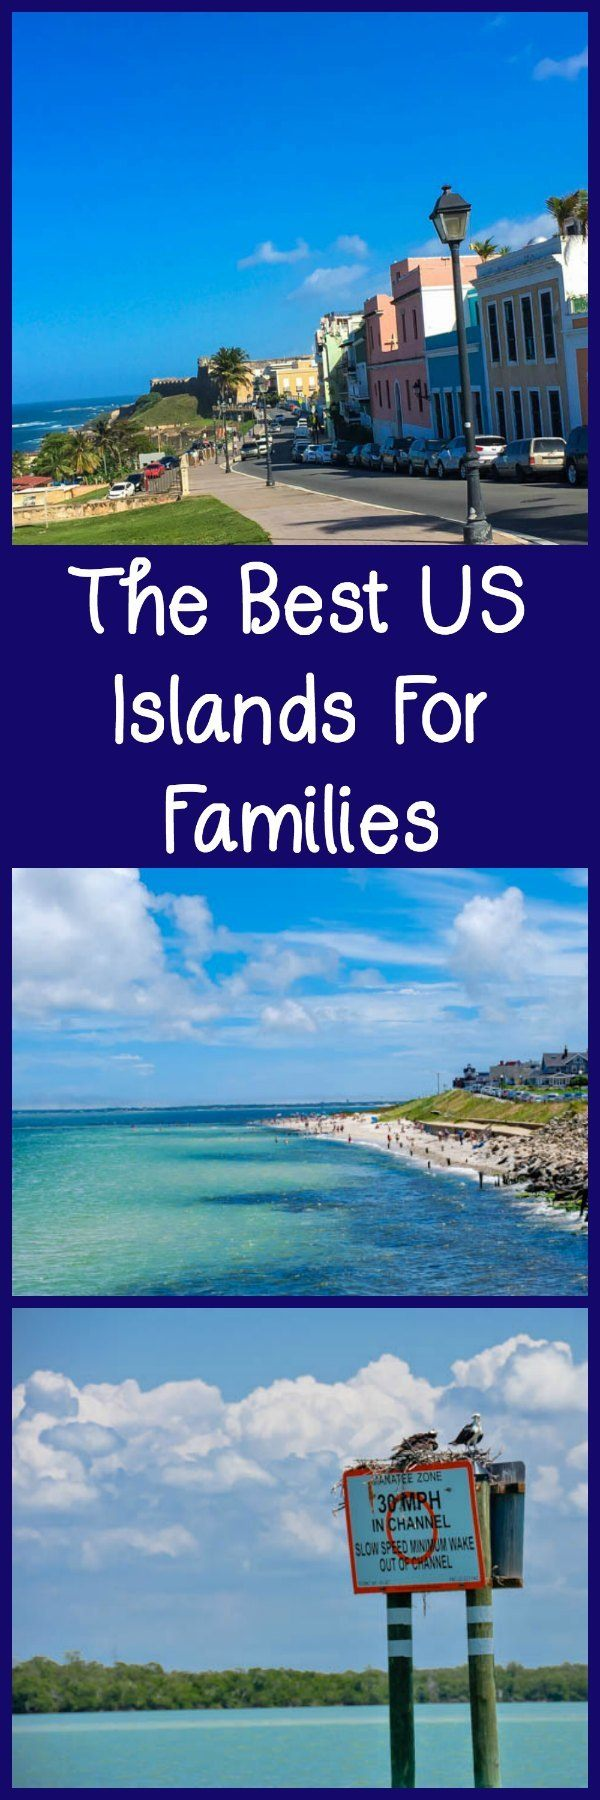 The Best US Islands for families, including islands in George (St Simons), Massachusetts (Martha's Vineyard), and South Carolina.